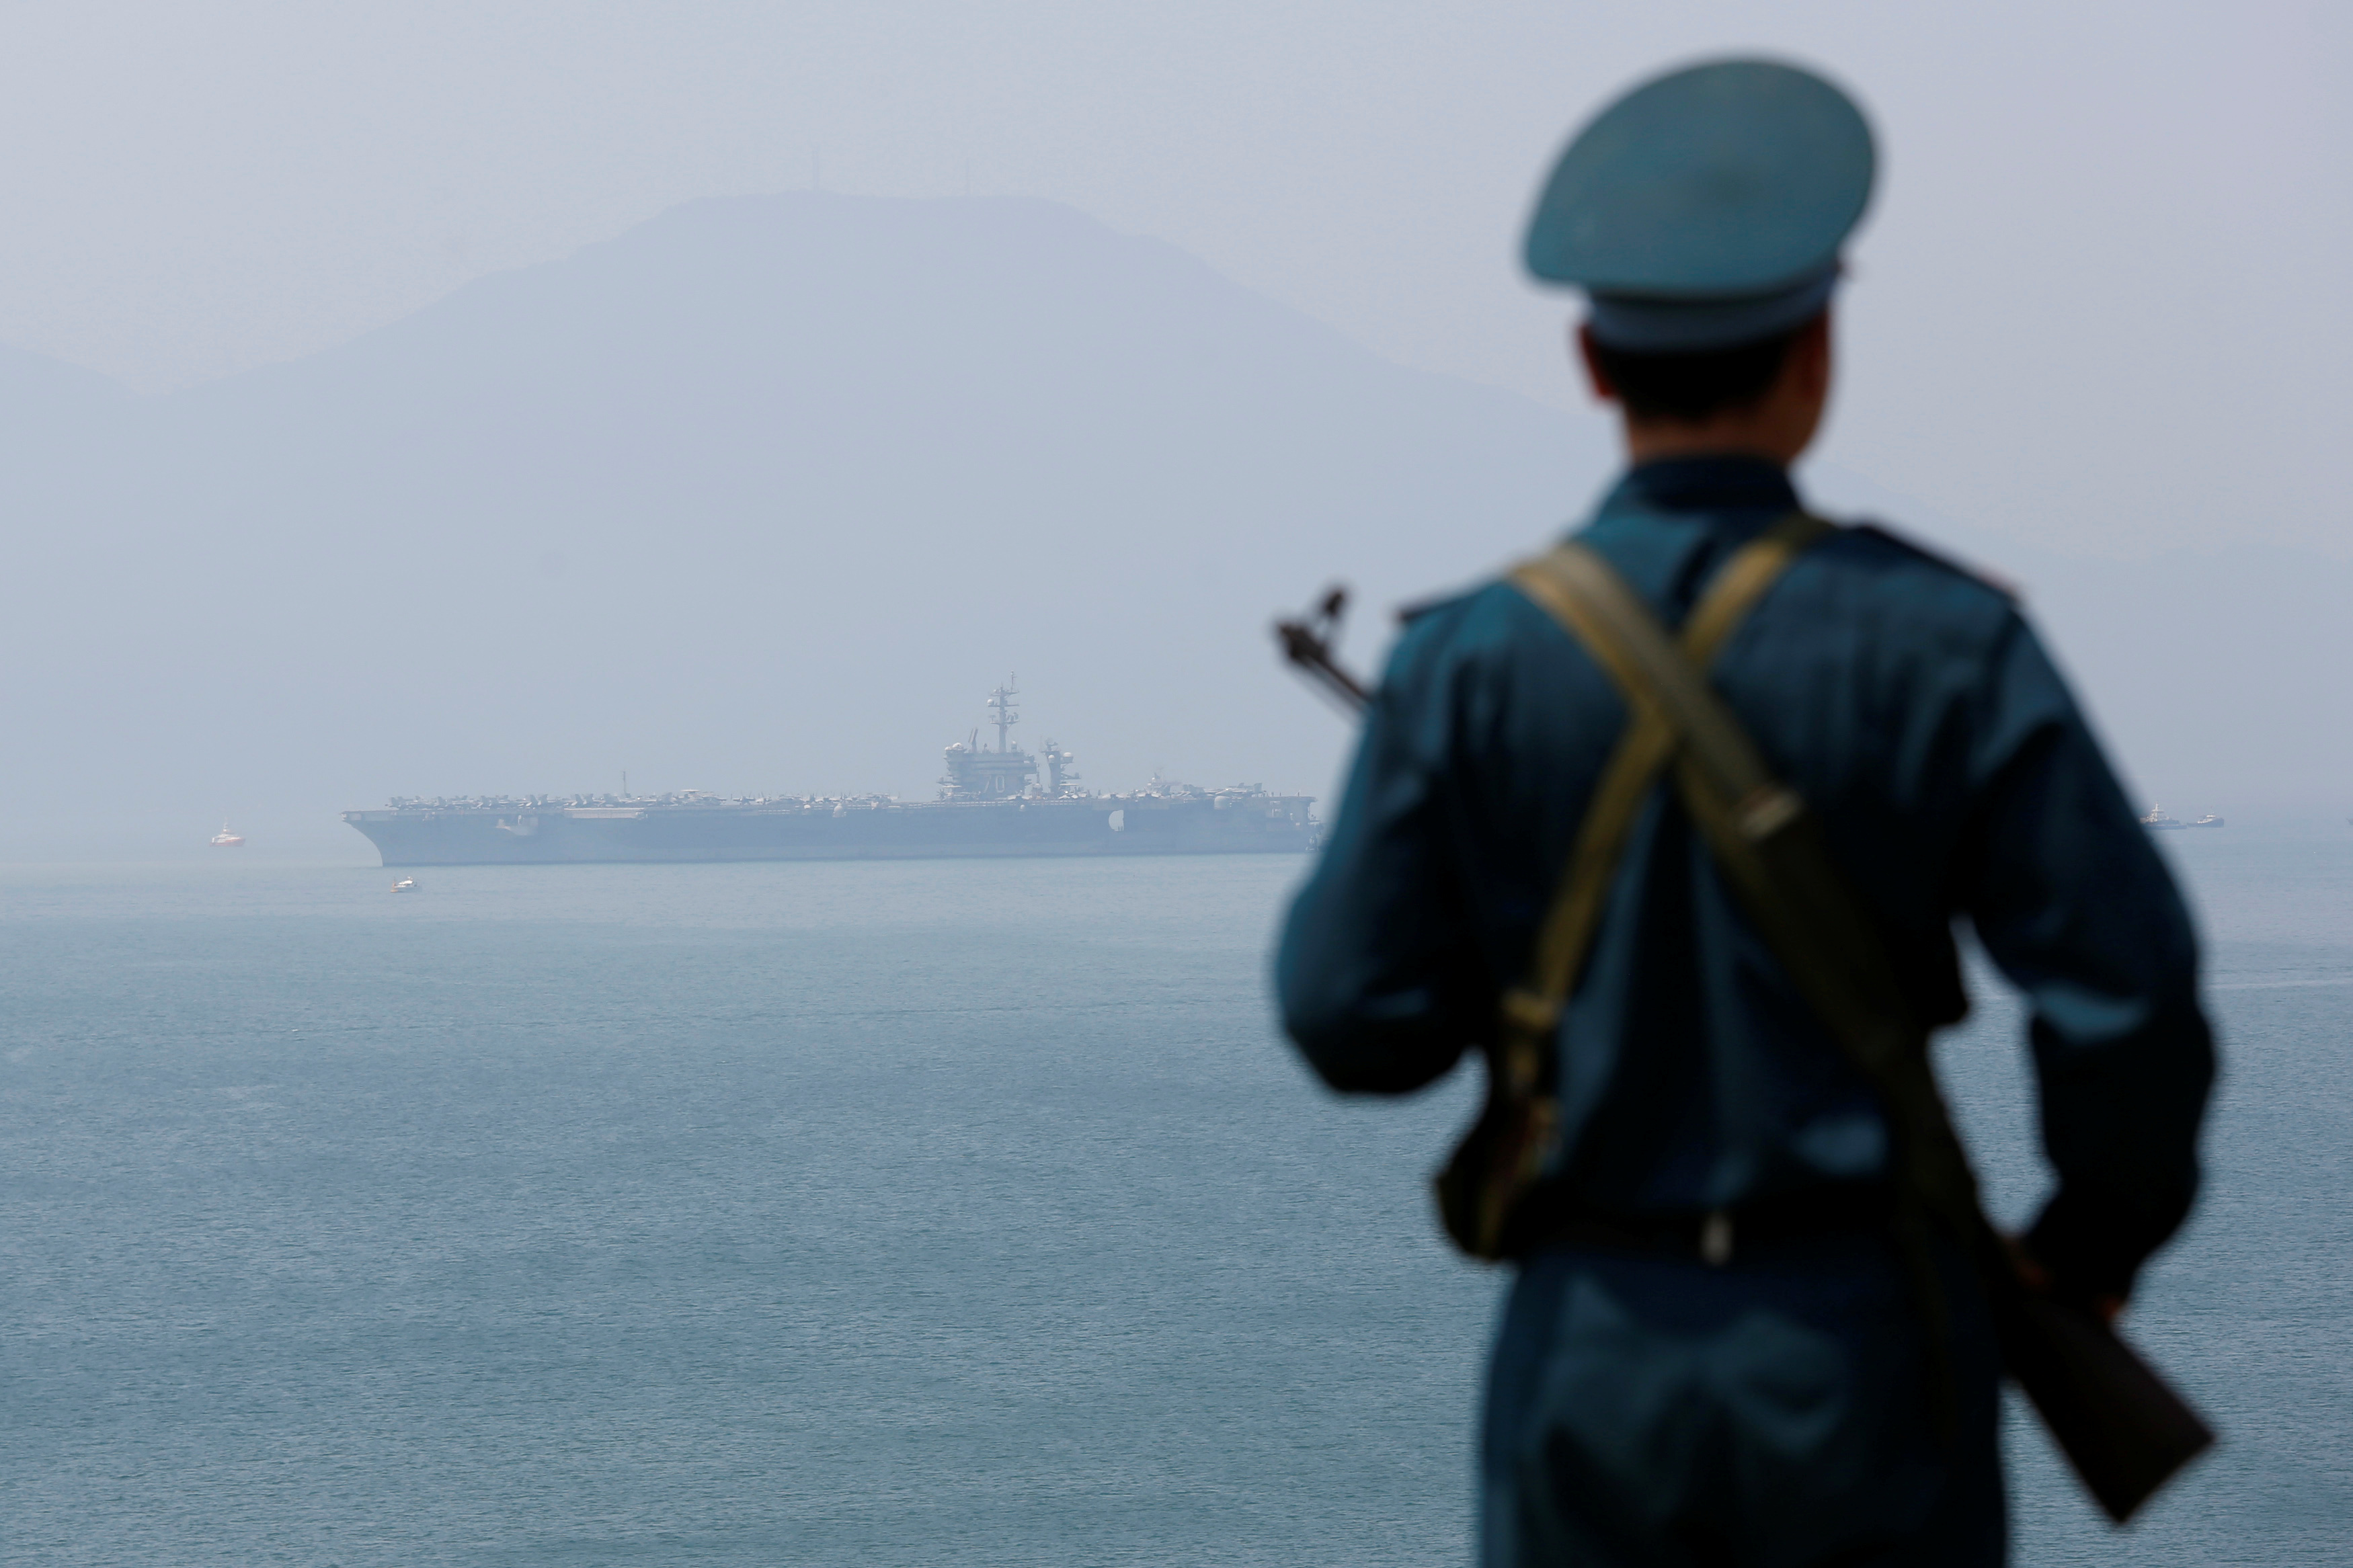 A Vietnamese soldier keeps watch in front of U.S. aircraft carrier USS Carl Vinson after its arrival at a port in Danang, Vietnam March 5, 2018. REUTERS/Kham - RC1CCE413490